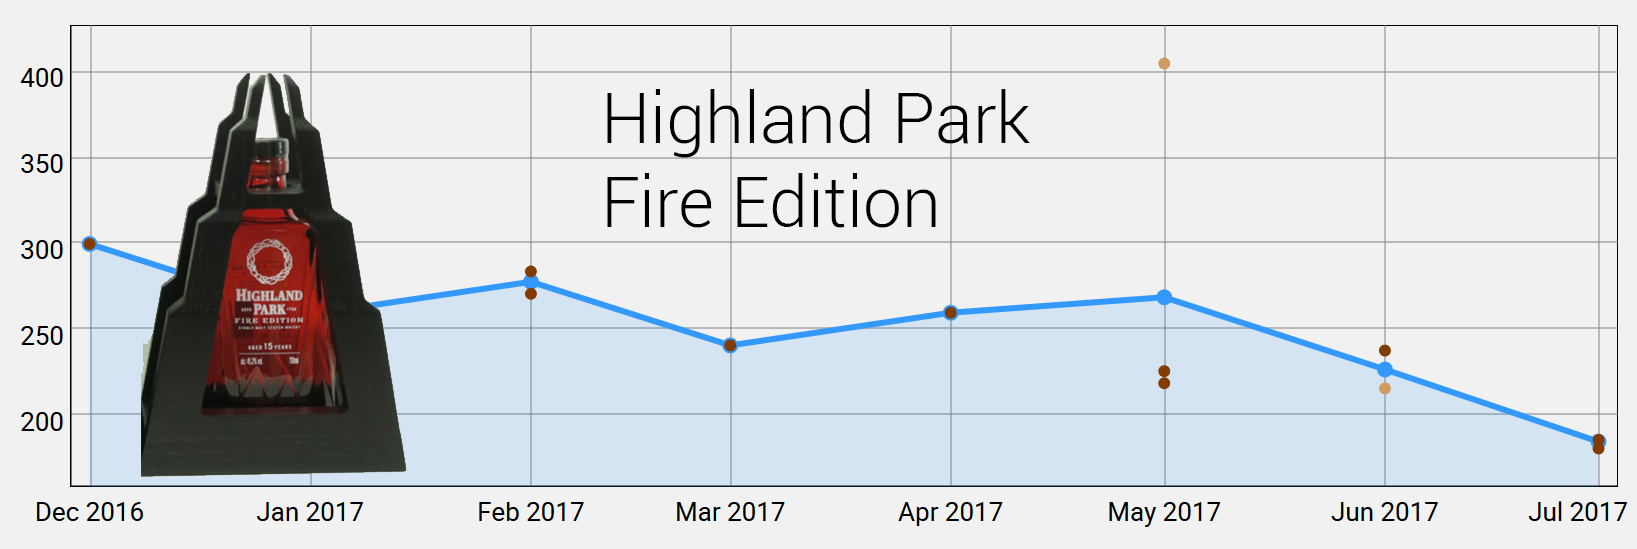 Highland Park Fire Edition